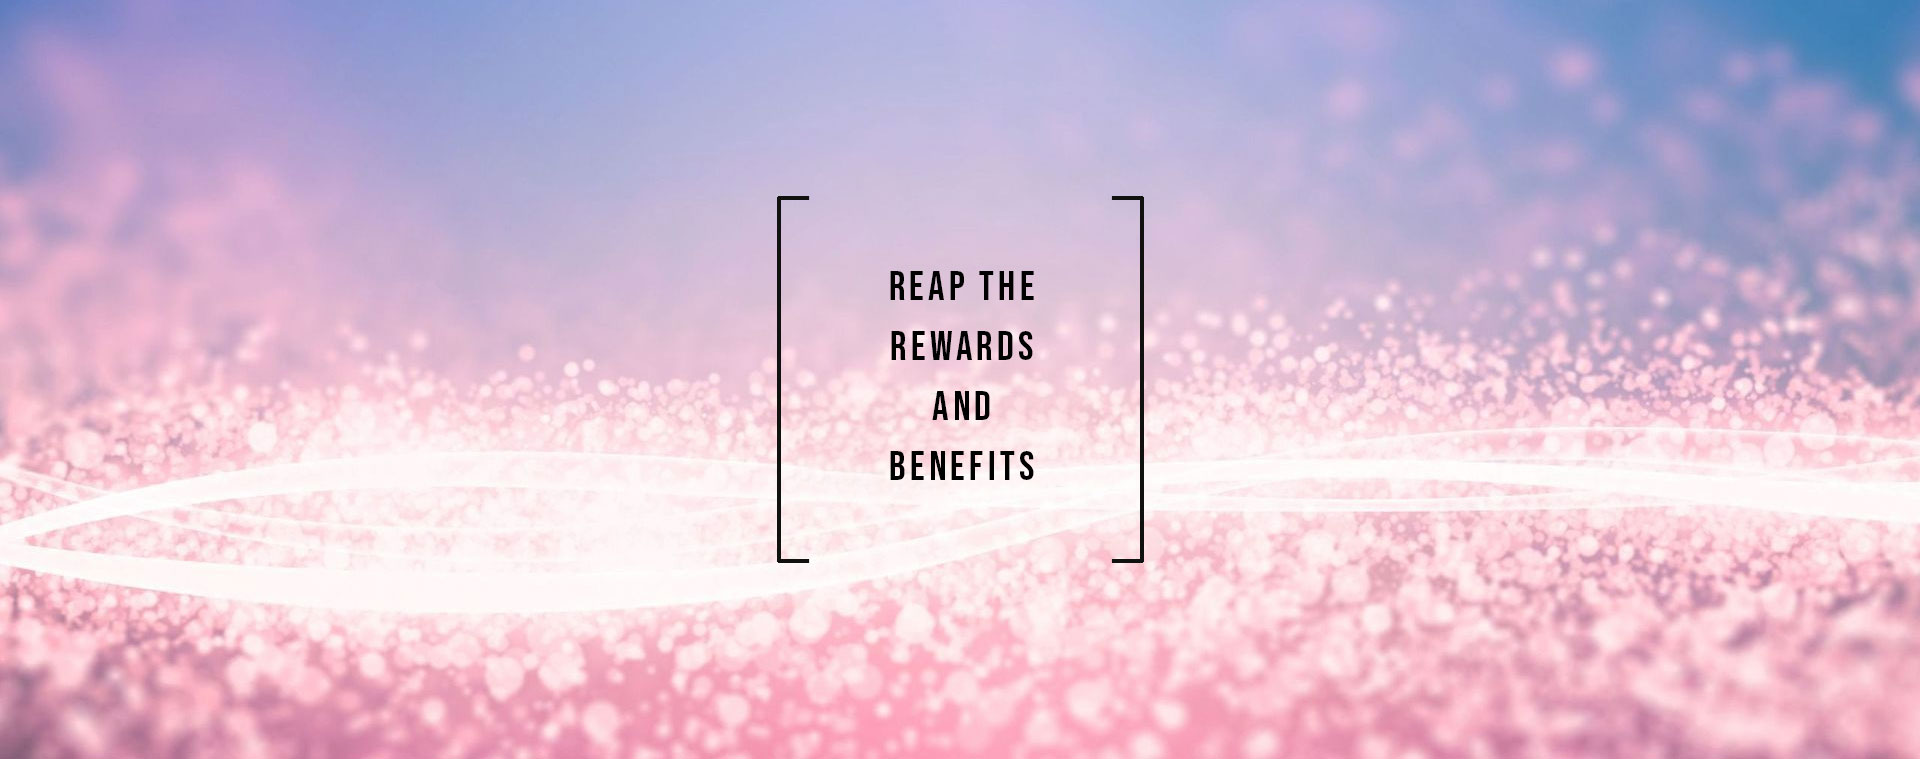 Reap the rewards and benefits